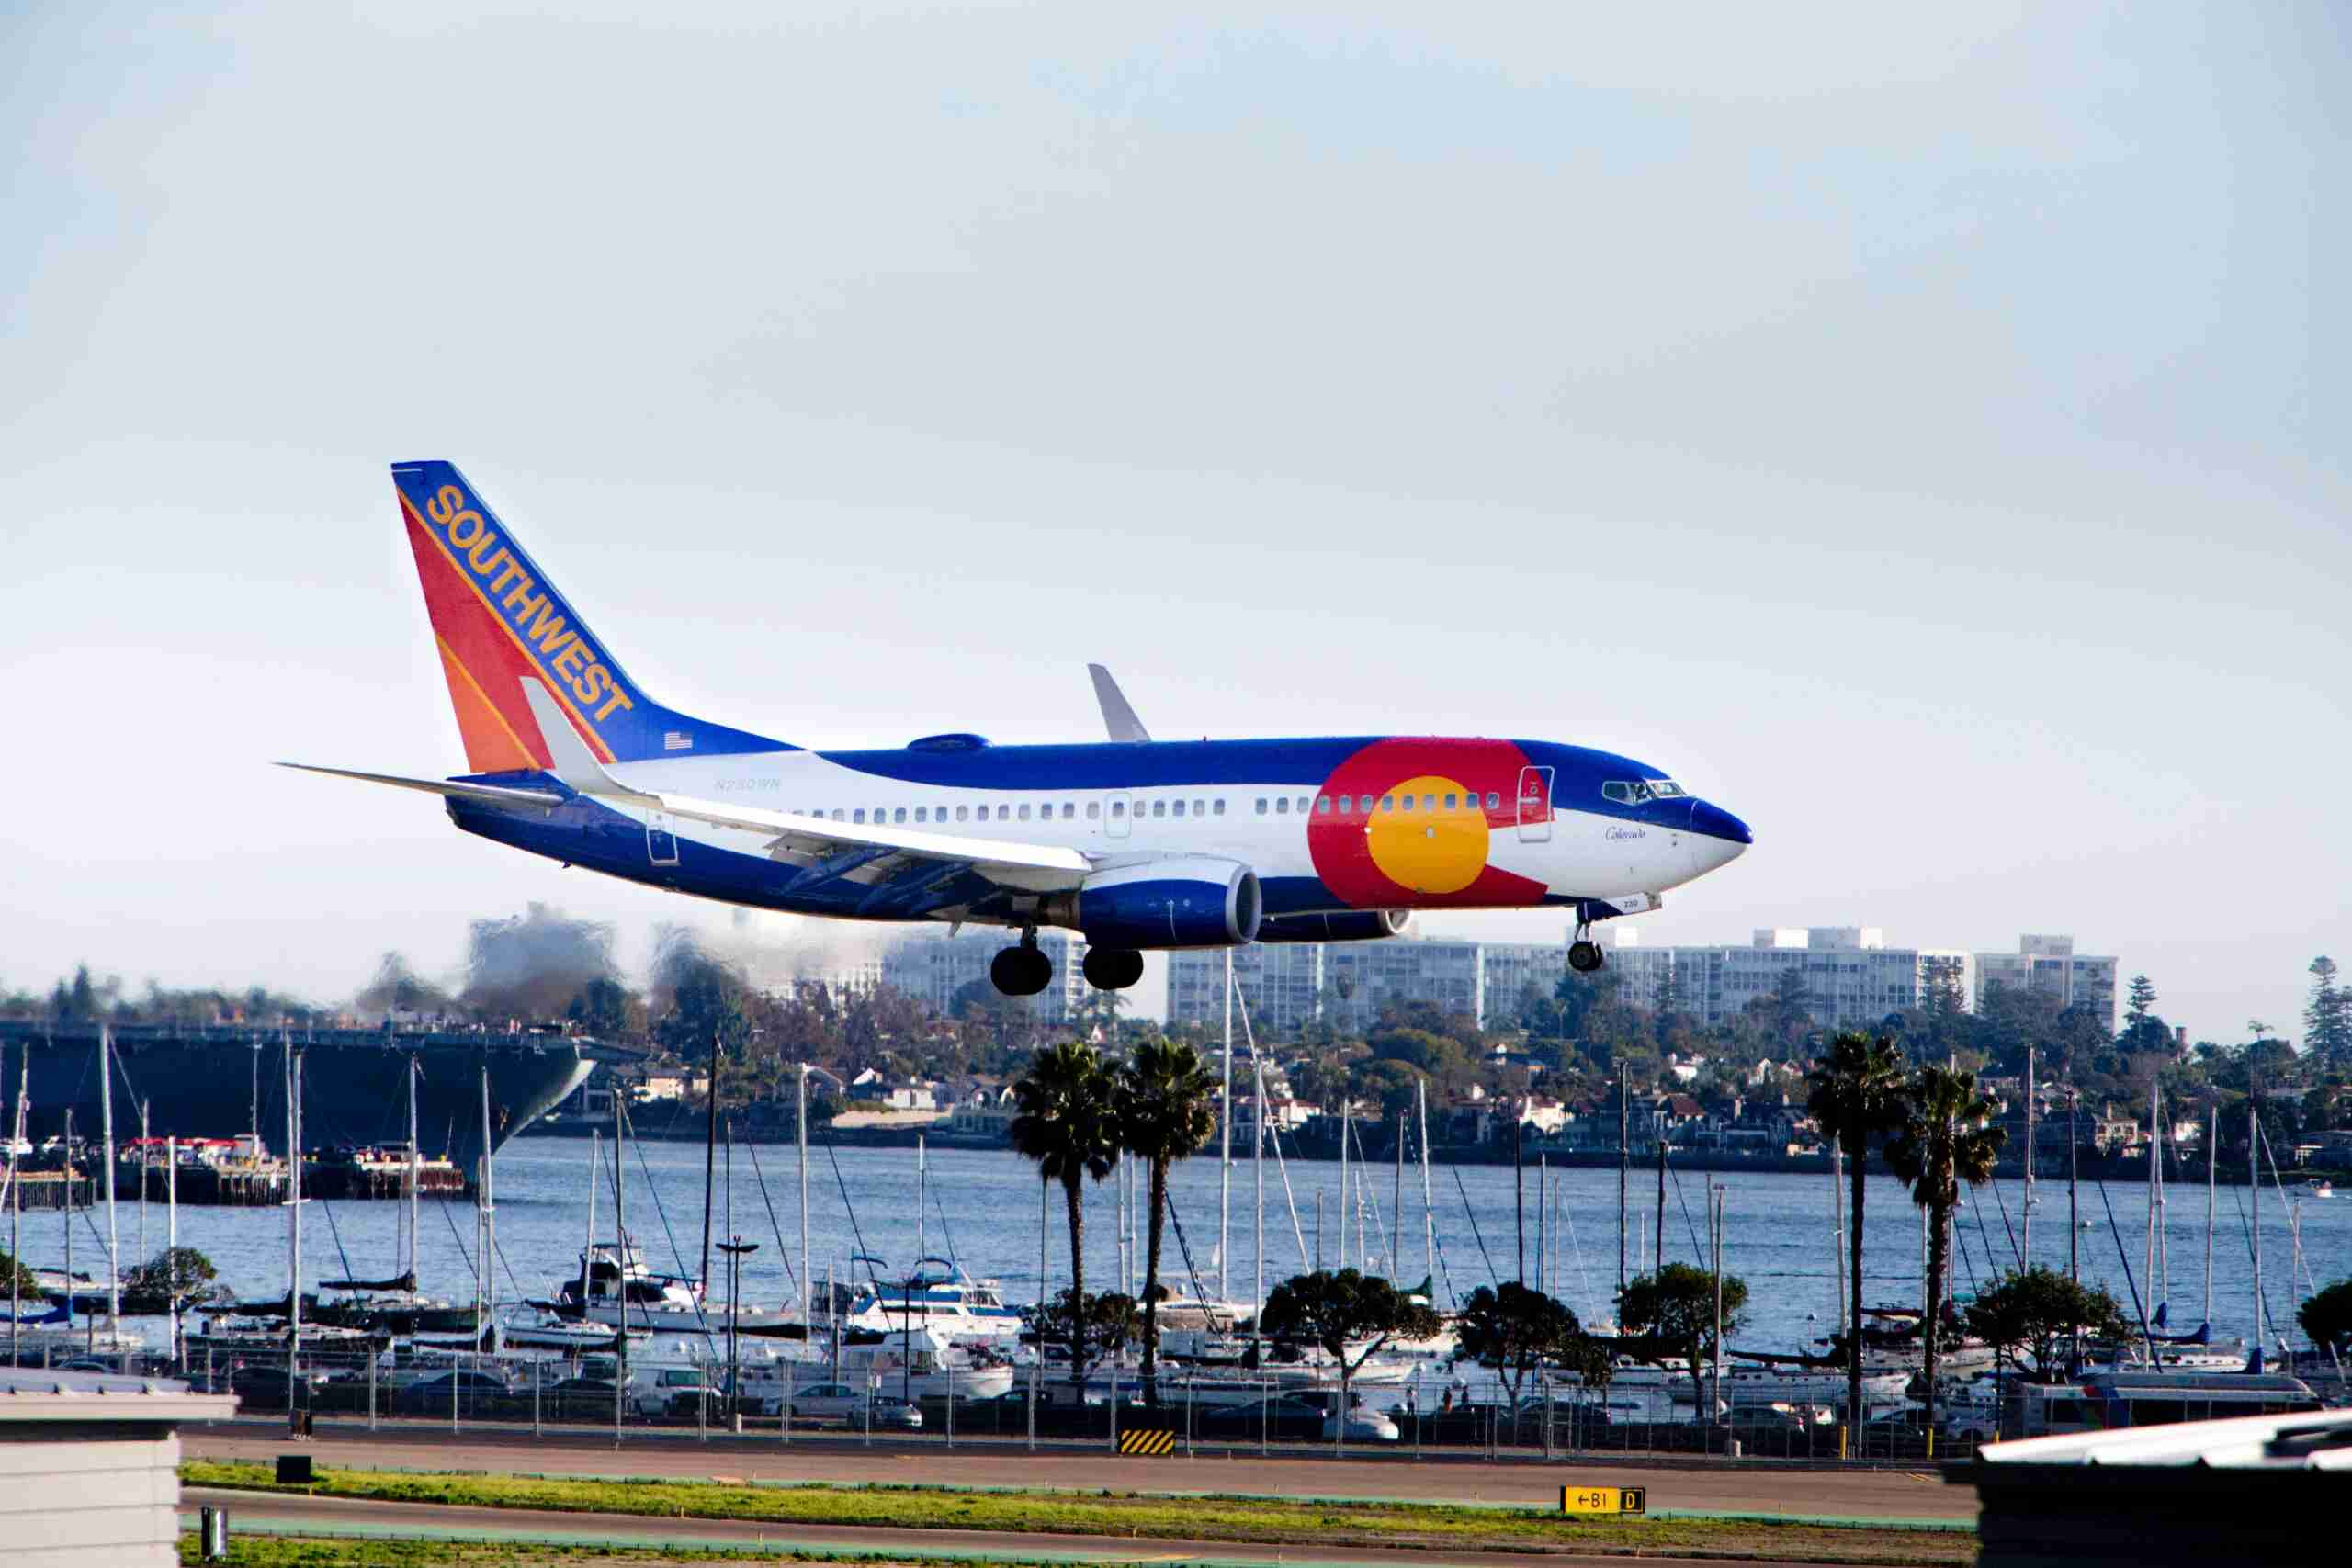 A Southwest Airlines jet wearing a special Colorado livery approaches San Diego